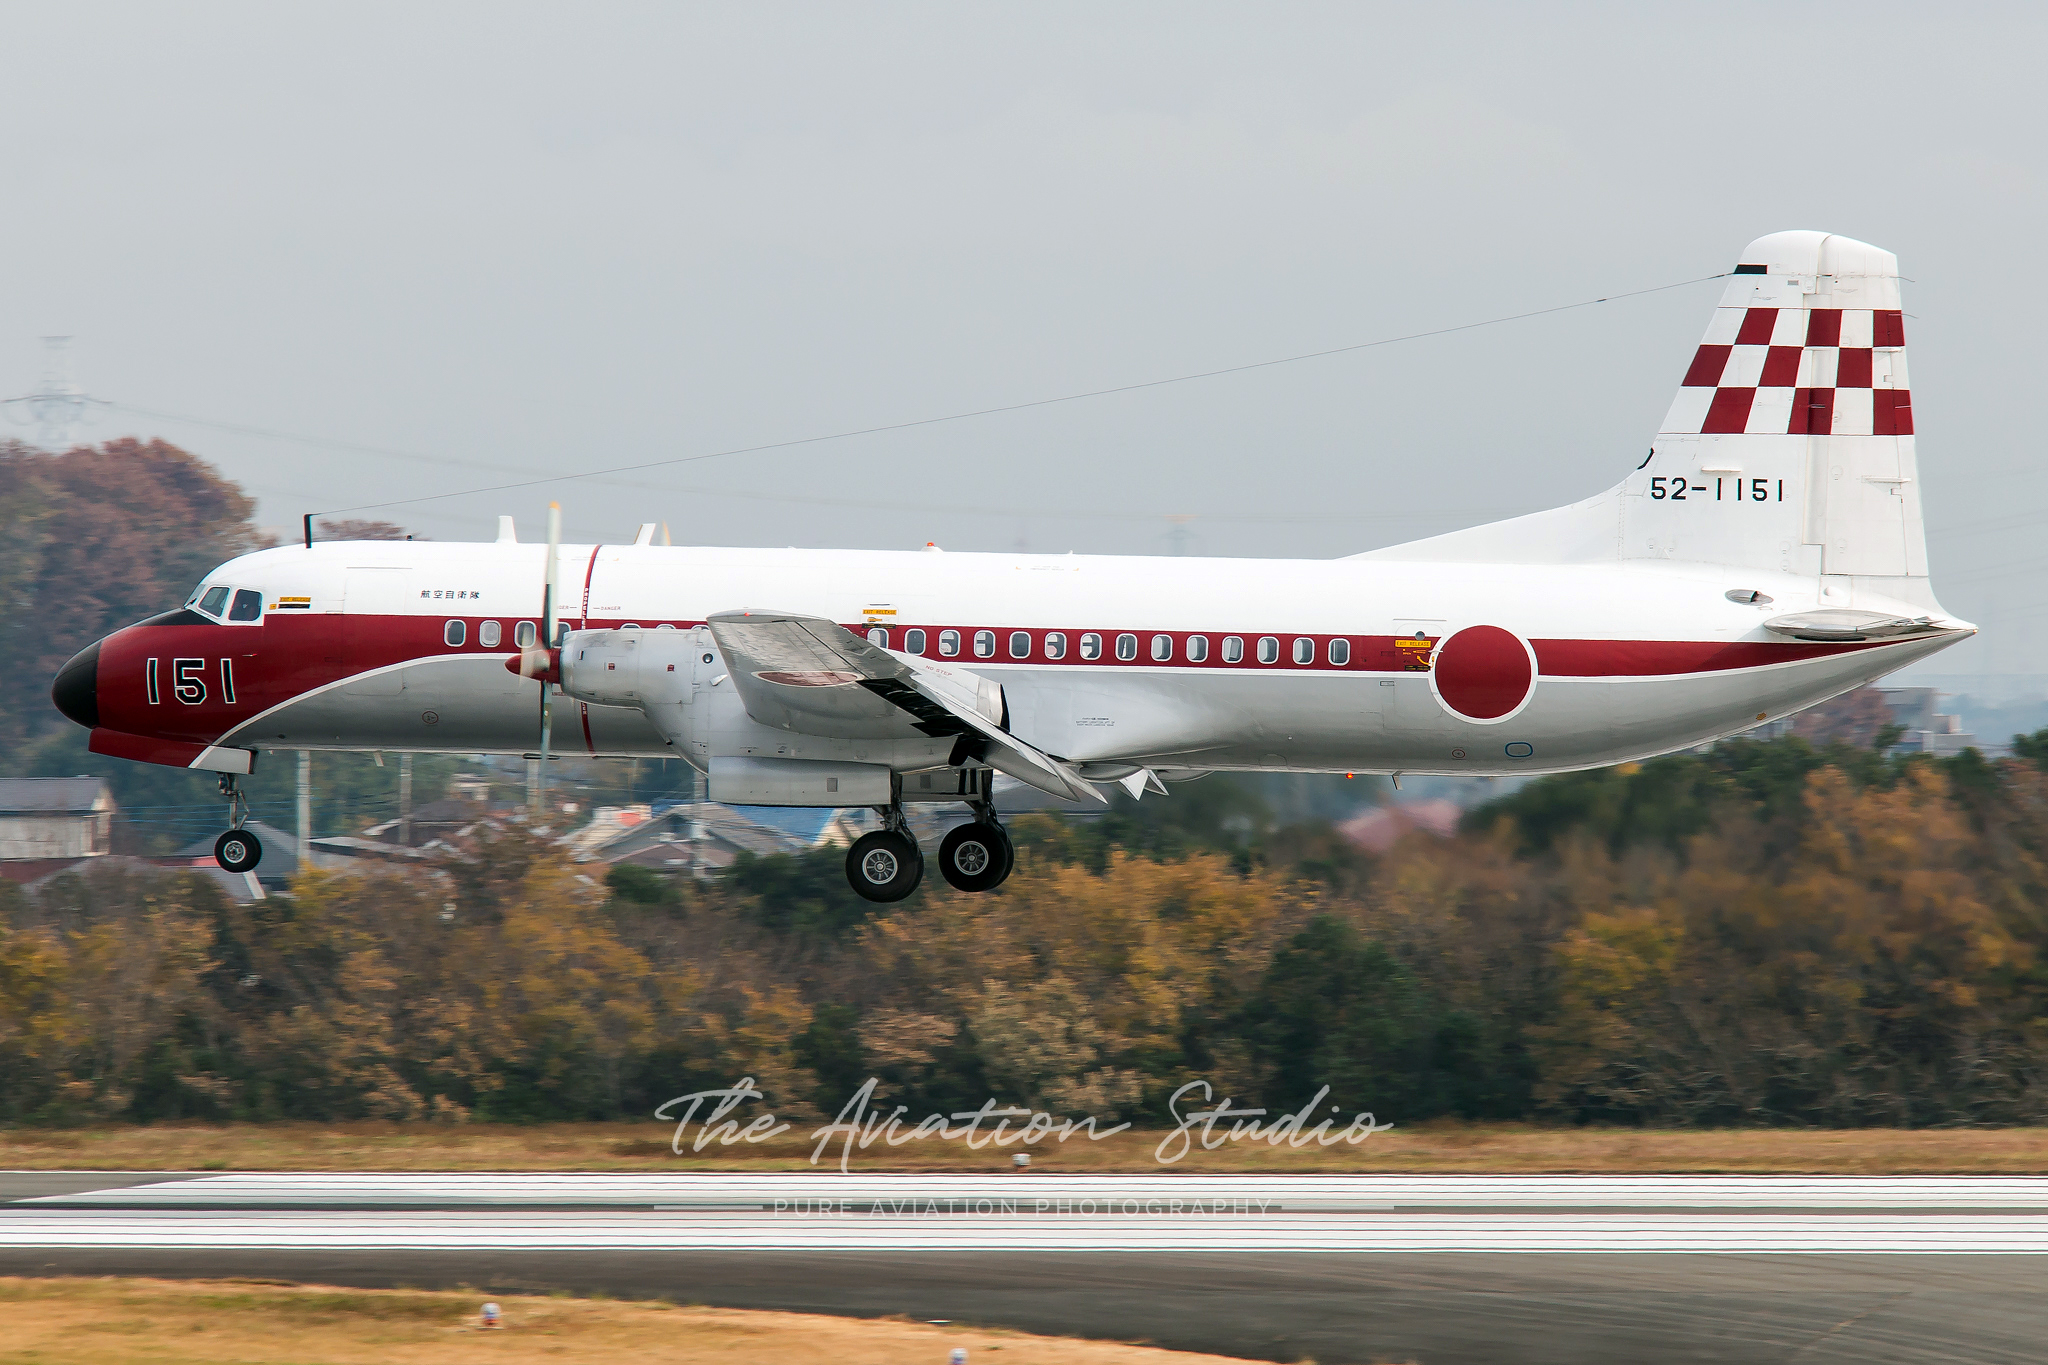 NAMC YS-11FC 52-1151 over the threshold at Iruma (Image: Brock Little)